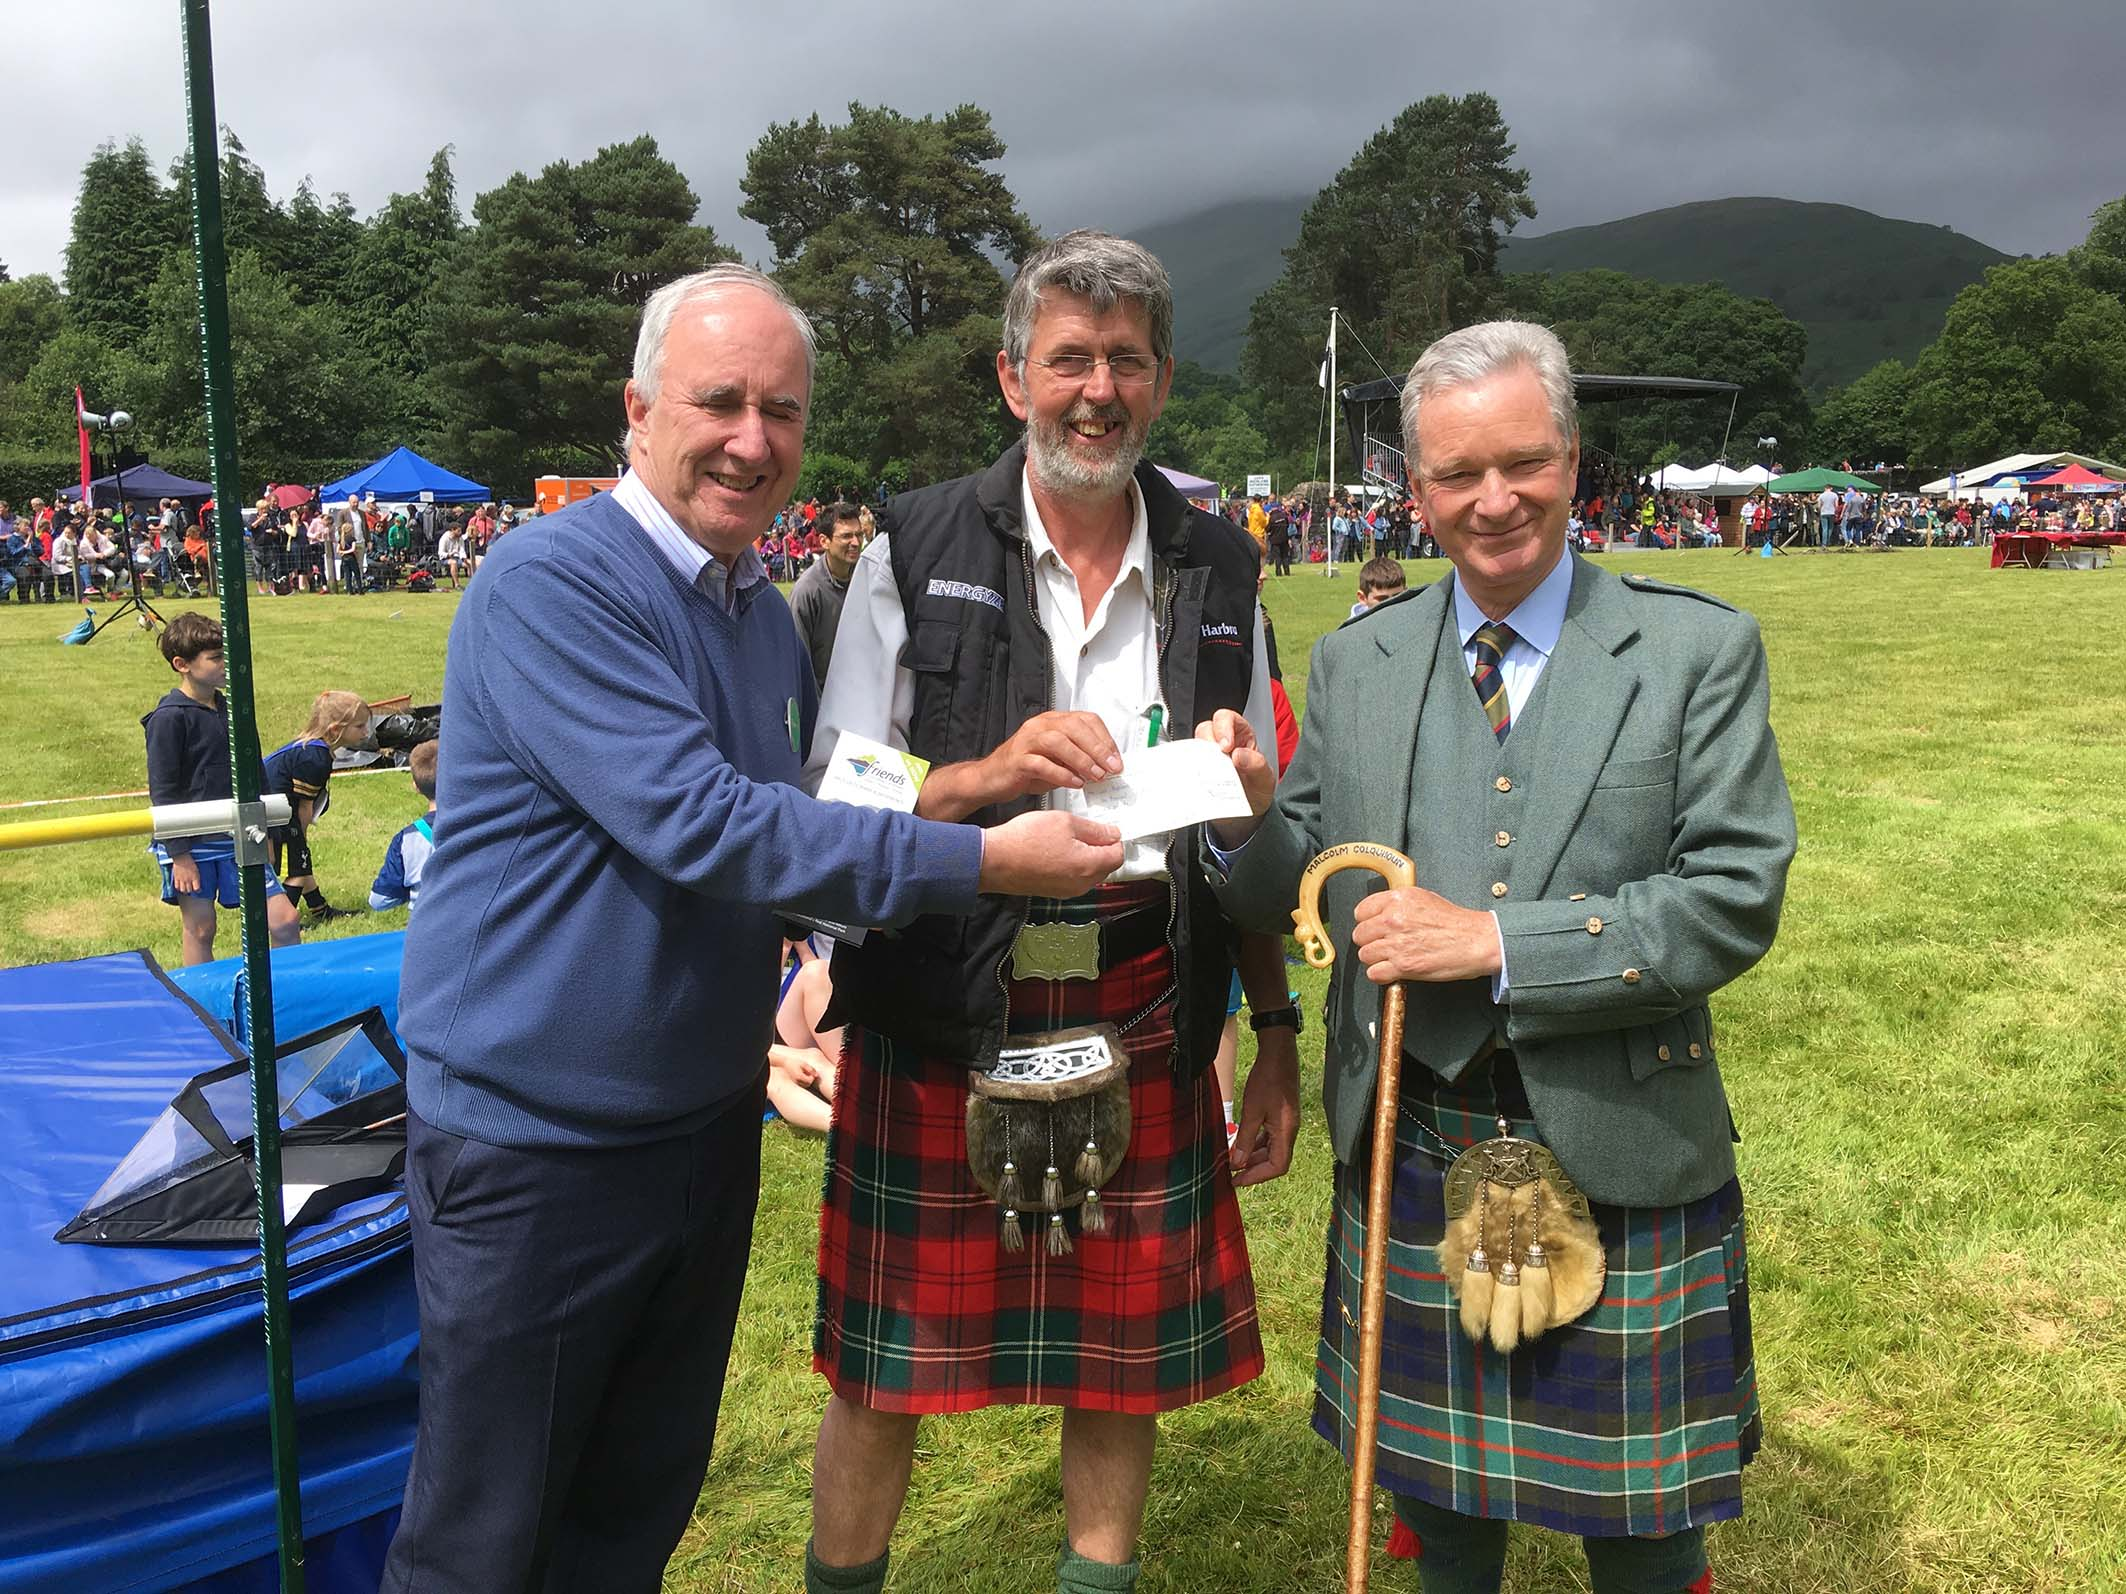 James Fraser, Chairman of Friends of Loch Lomond and The Trossachs (left), hands over the cheque to Bobby Lennox (centre) and Sir Malcolm Colquhoun.